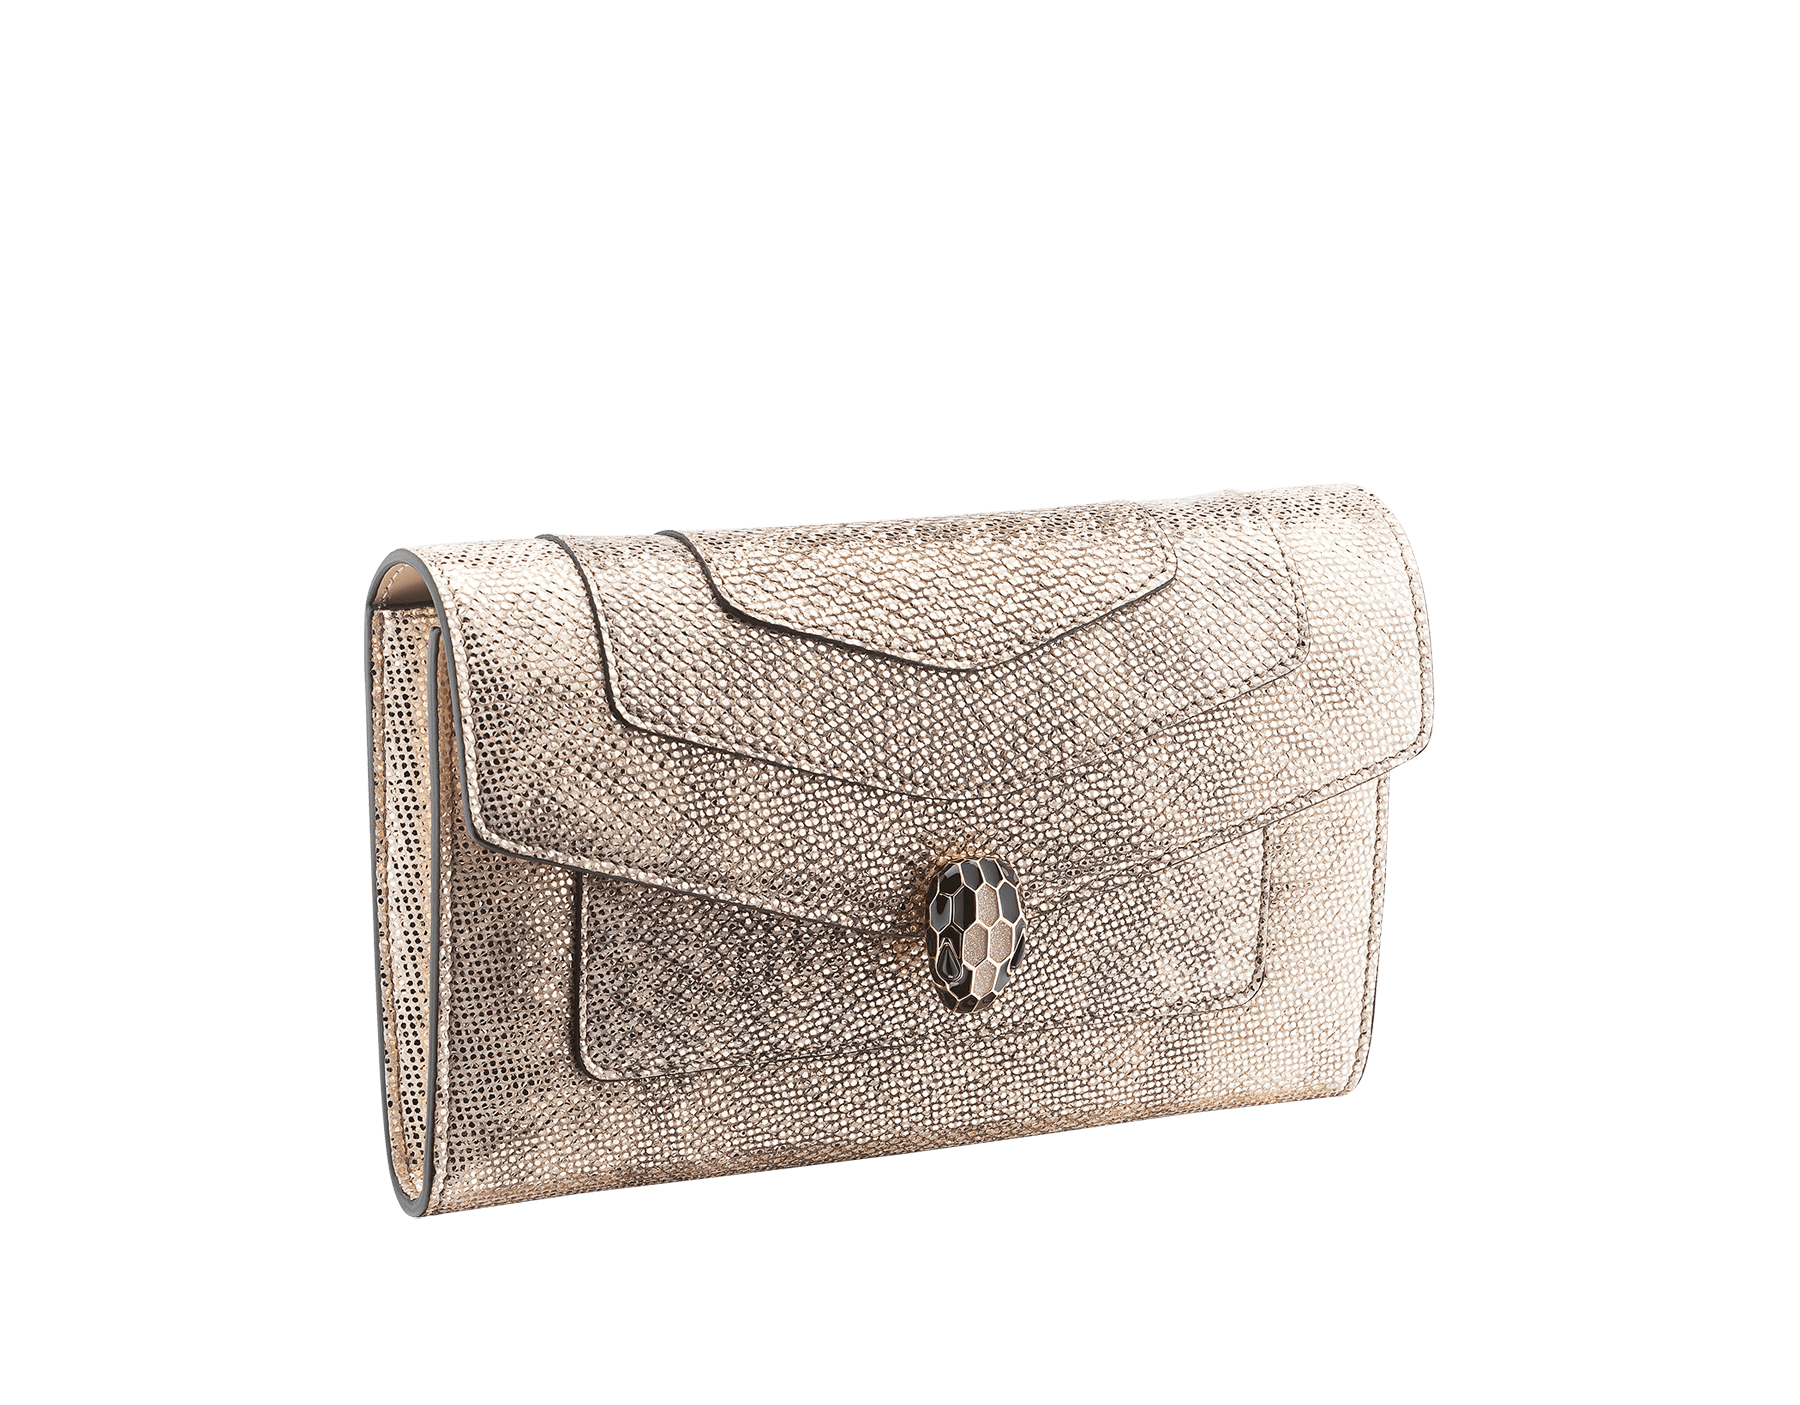 """Serpenti Forever"" new large wallet in metallic Milky Opal beige karung skin and Milky Opal beige calfskin. Alluring snakehead closure in light gold-plated brass with black and glittery Milky Opal beige enamel and black onyx eyes. 290819 image 1"